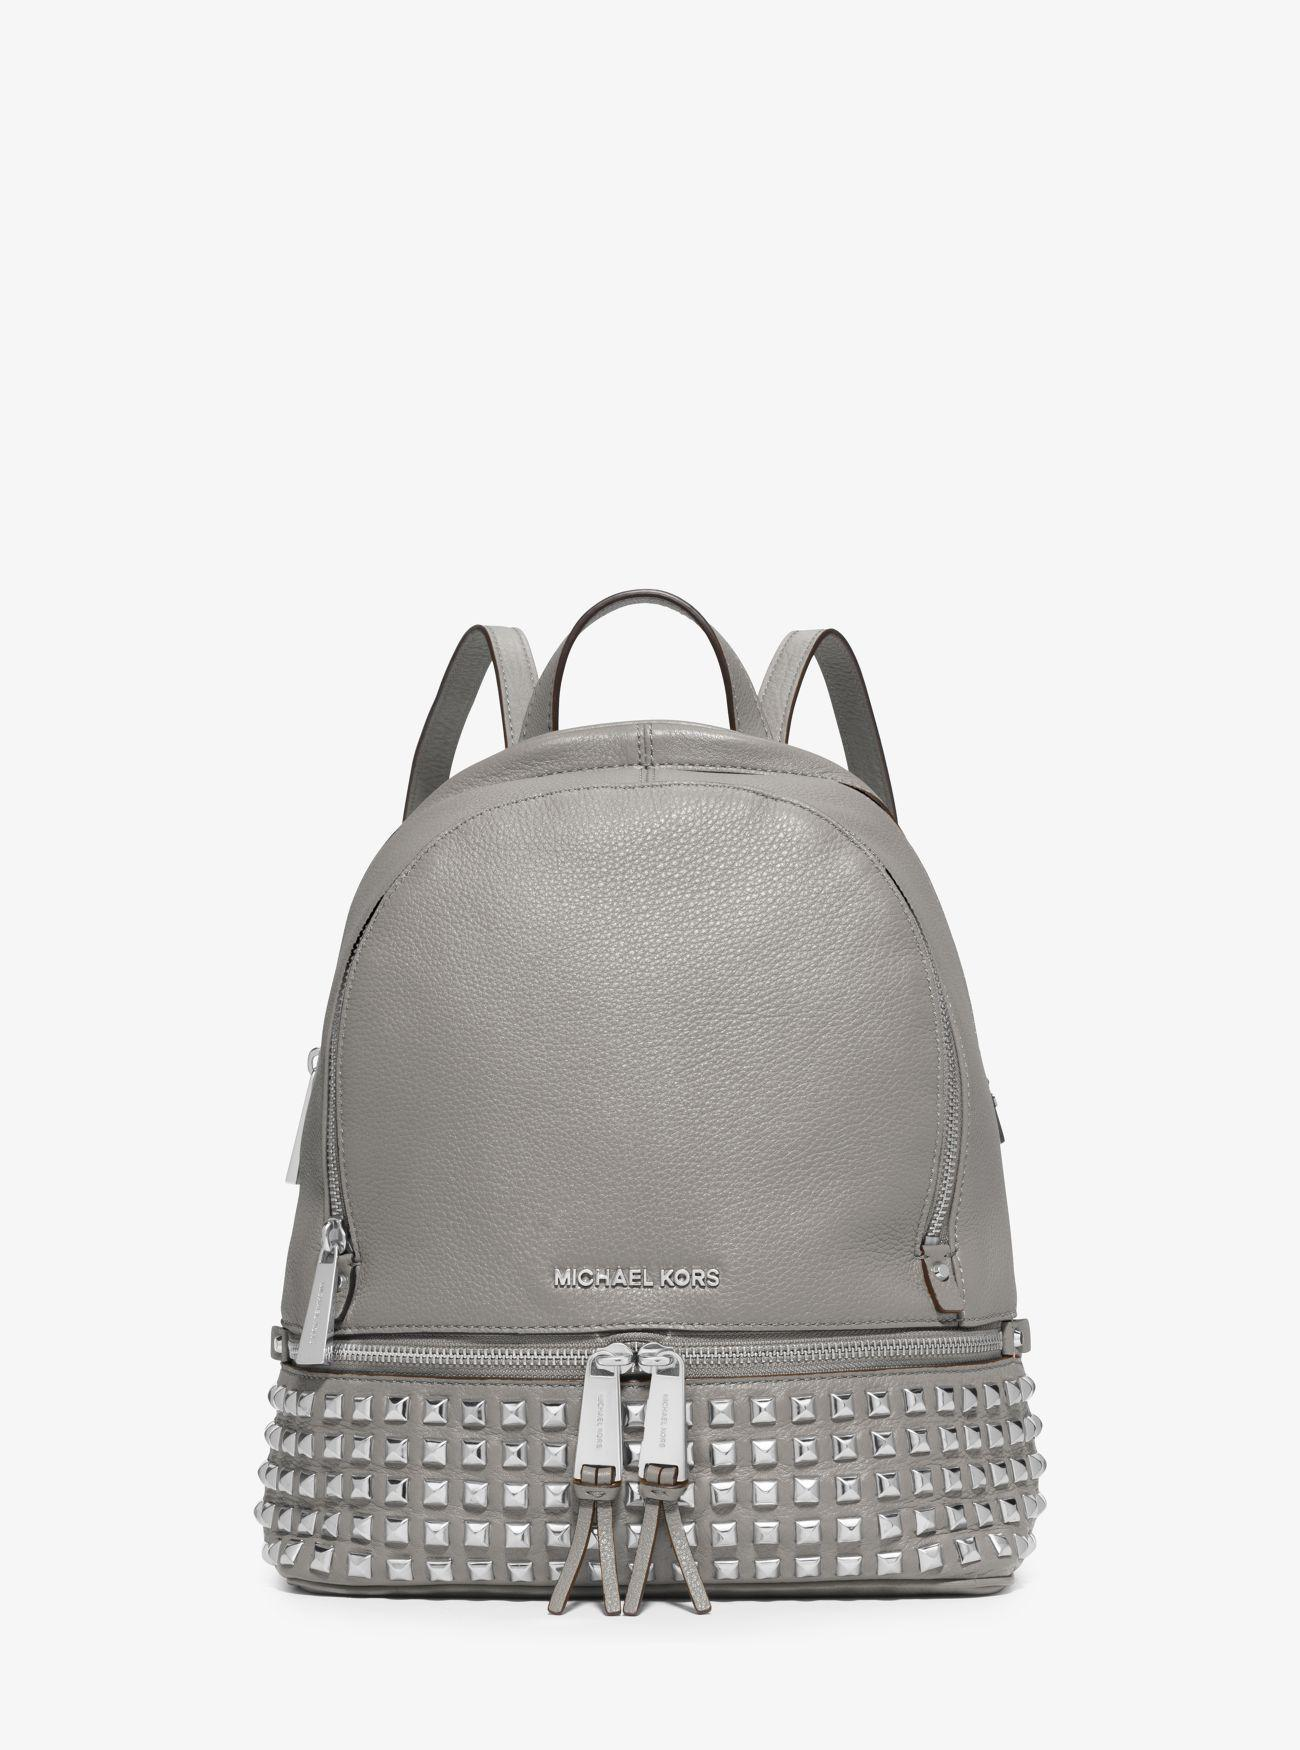 86746a8816d2 Michael Kors - White Rhea Medium Studded Pebbled Leather Backpack - Lyst.  View fullscreen